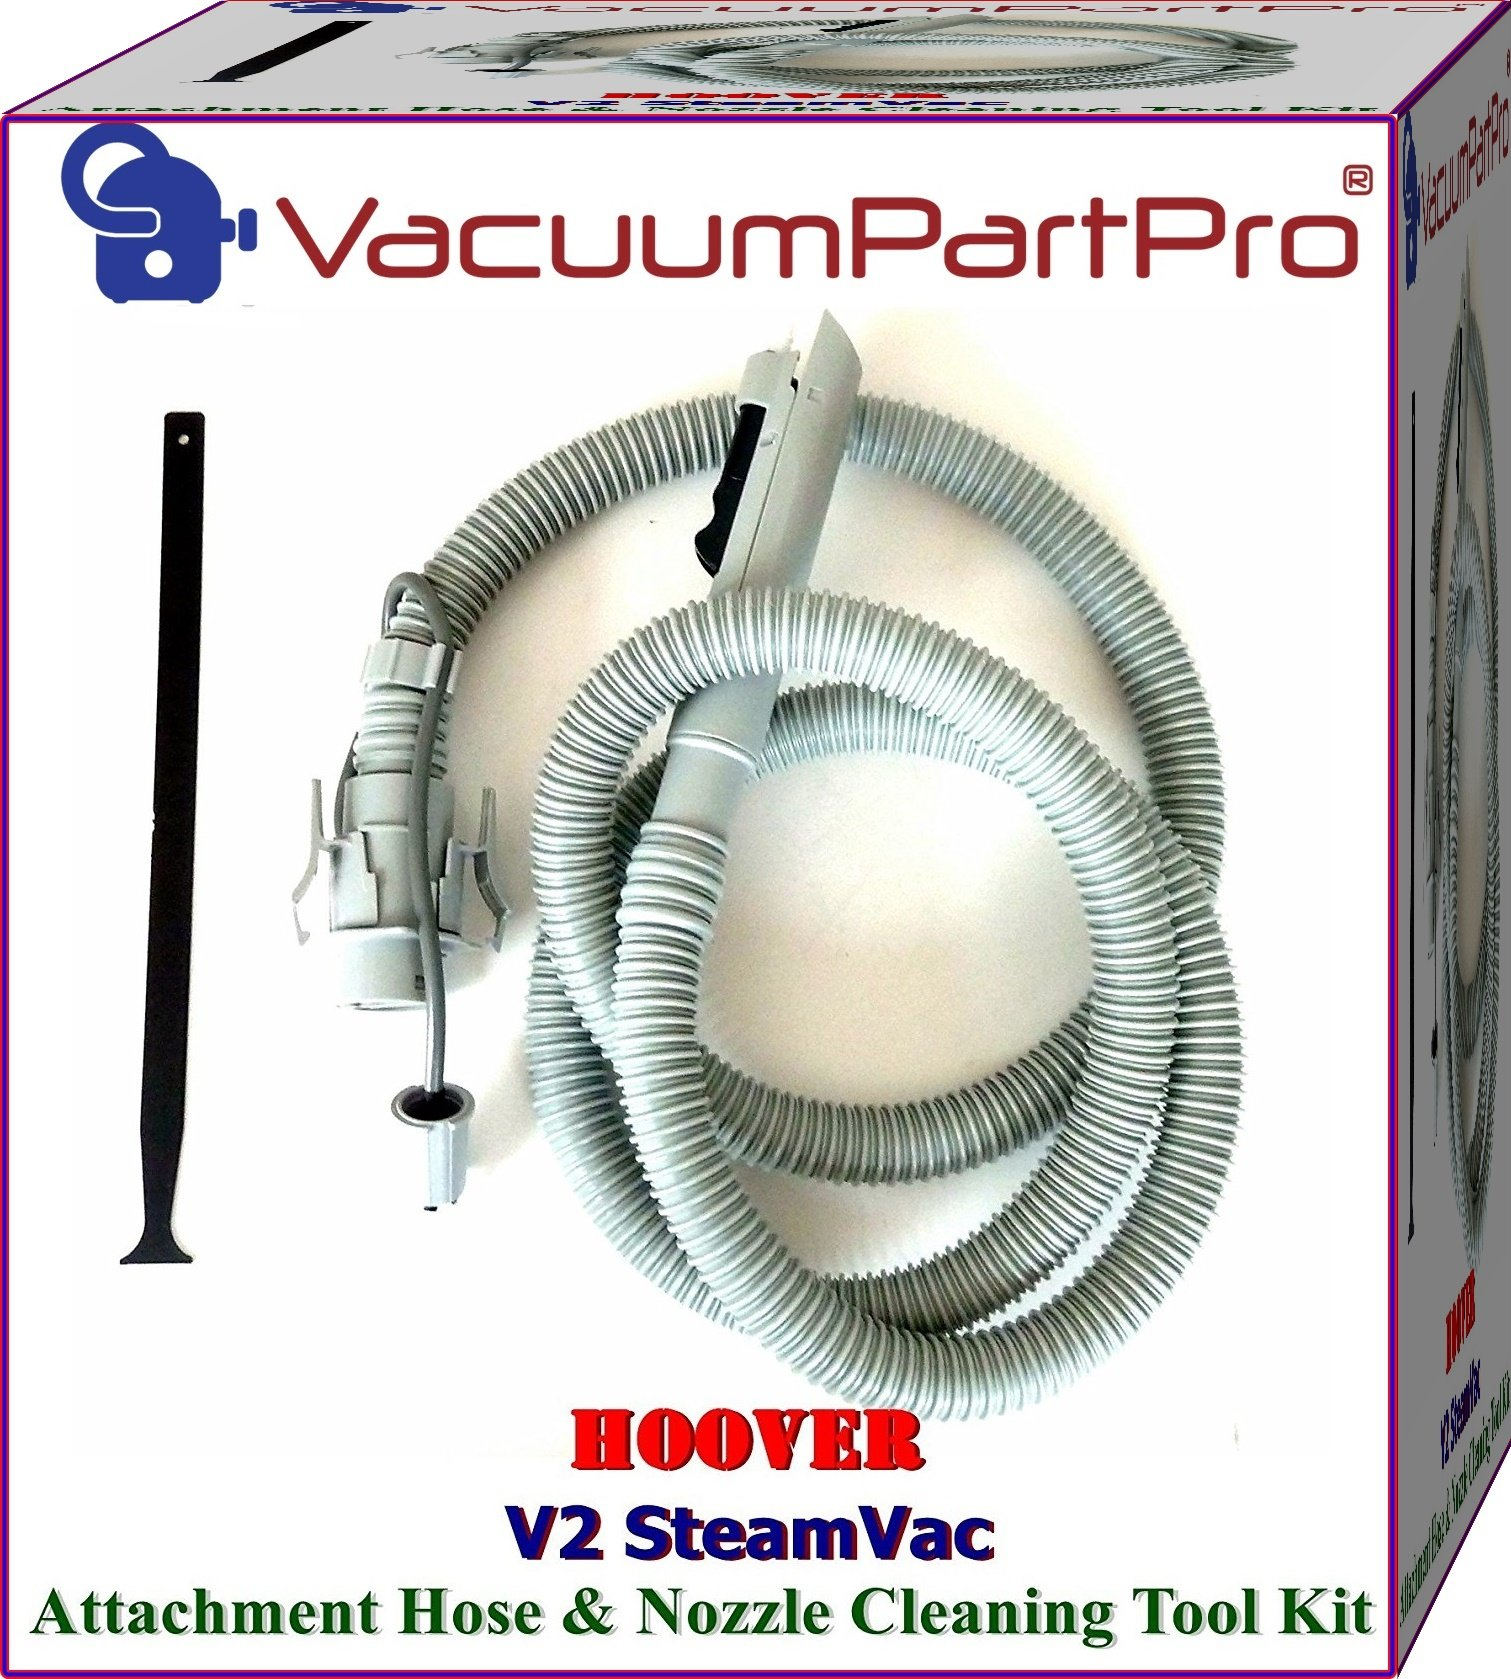 Hoover V2 SteamVac Attachment Hose -Latch Style and Nozzle CleanOut Tool By Vacuum Part Pro